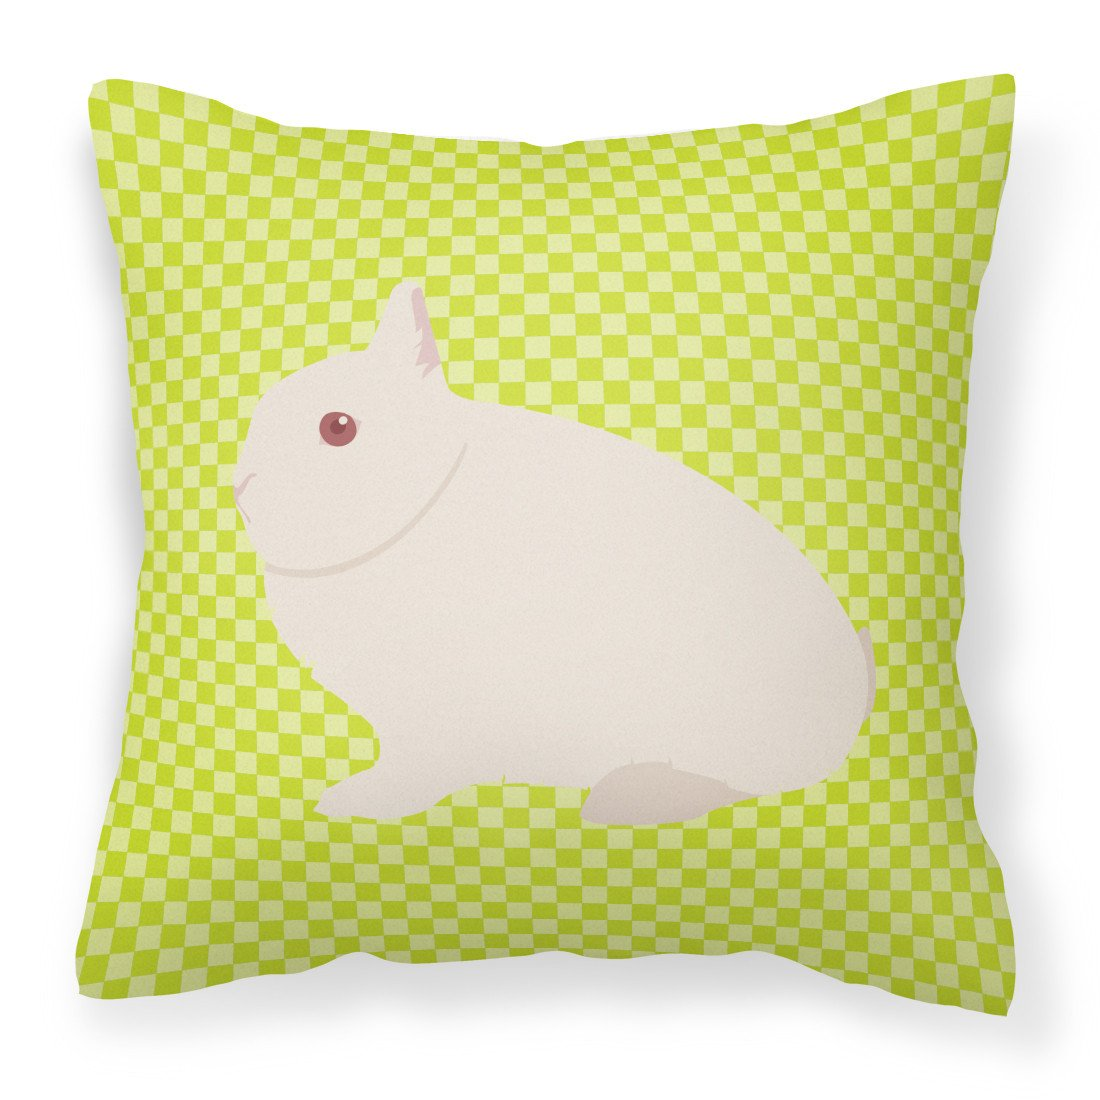 Hermelin Rabbit Green Fabric Decorative Pillow BB7790PW1818 by Caroline's Treasures